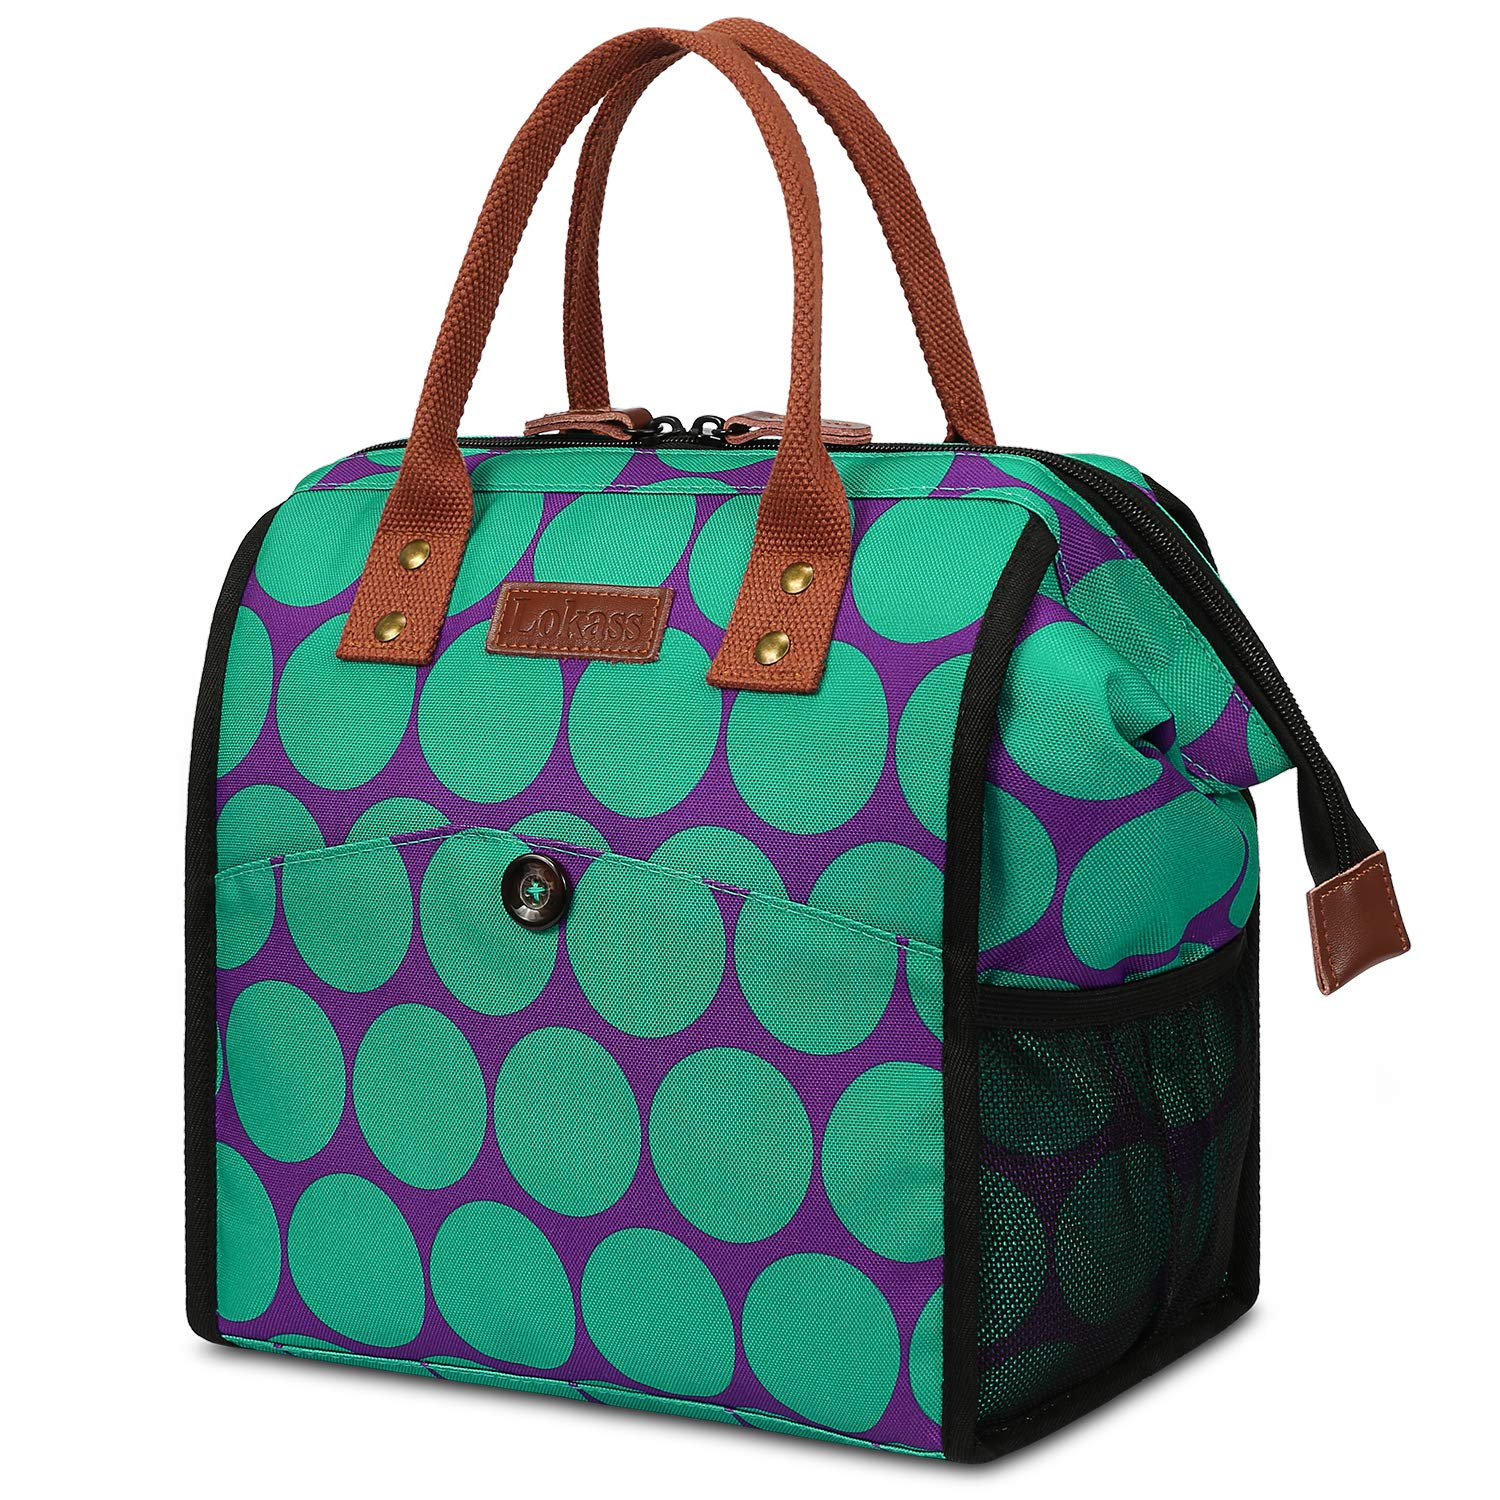 LOKASS Lunch Bag Cooler Bag Women Tote Bag Insulated Lunch Box Water-resistant Thermal Lunch Bag Soft Lunch Bags with wide-open for women (Green+Blue)